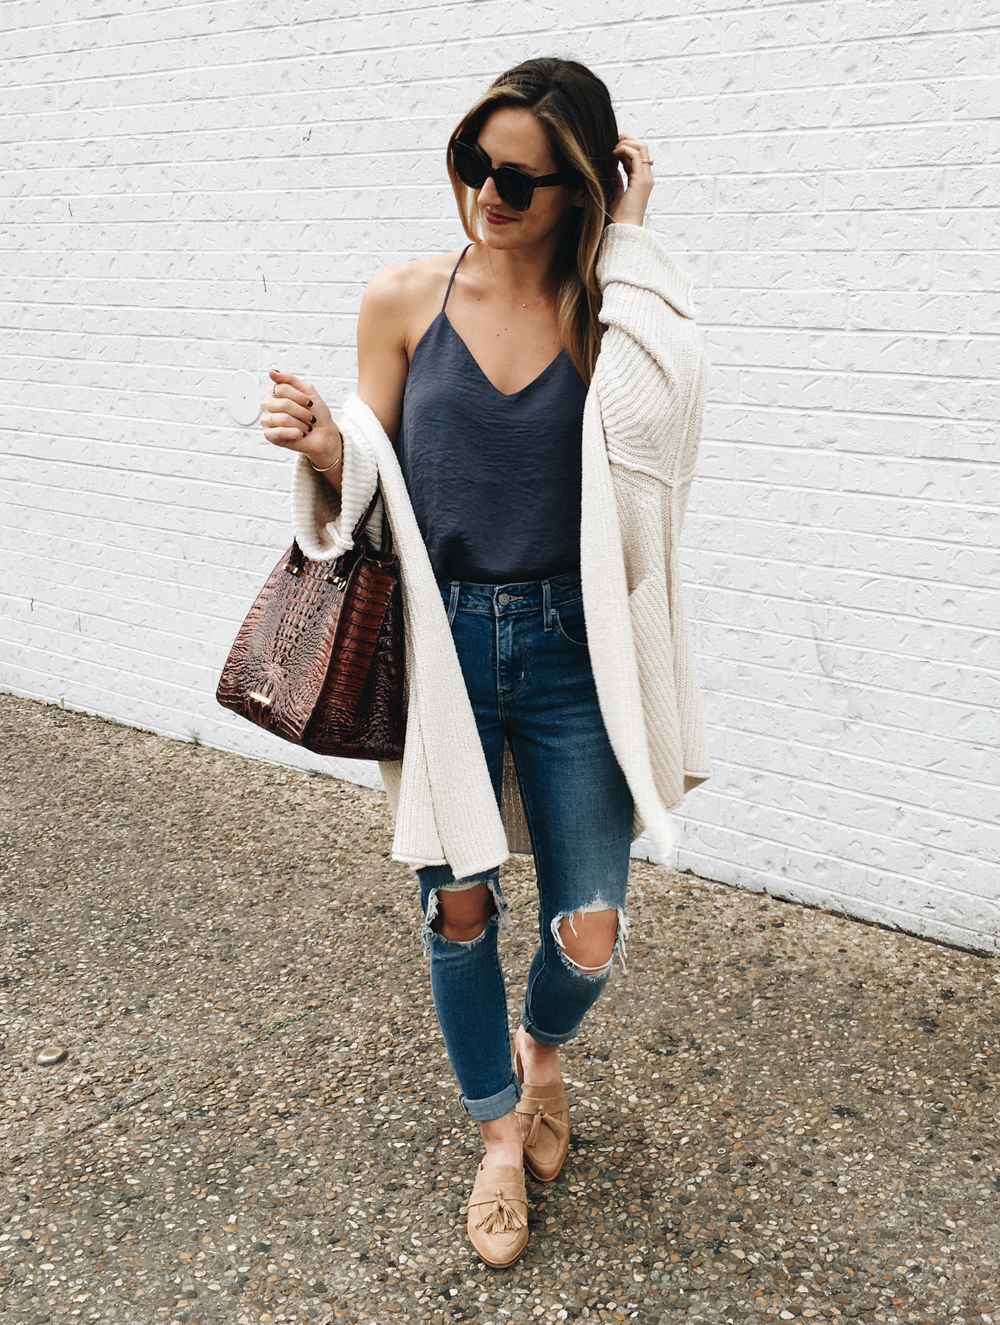 Instagram Roundup January 8 2017 - LivvyLand | Austin Fashion and Style Blogger